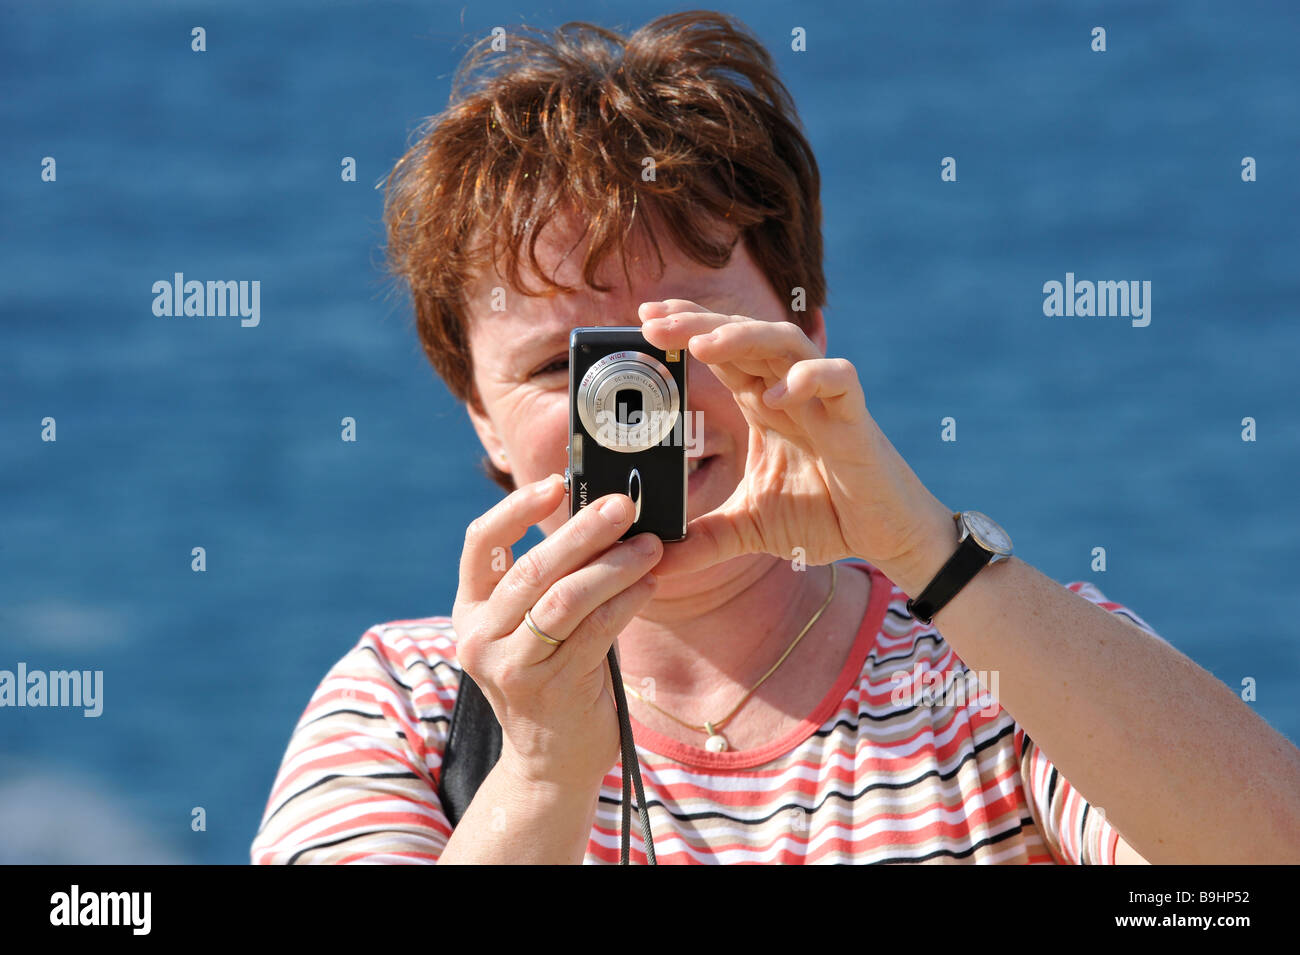 Woman taking a picture with a Lumix digital camera - Stock Image